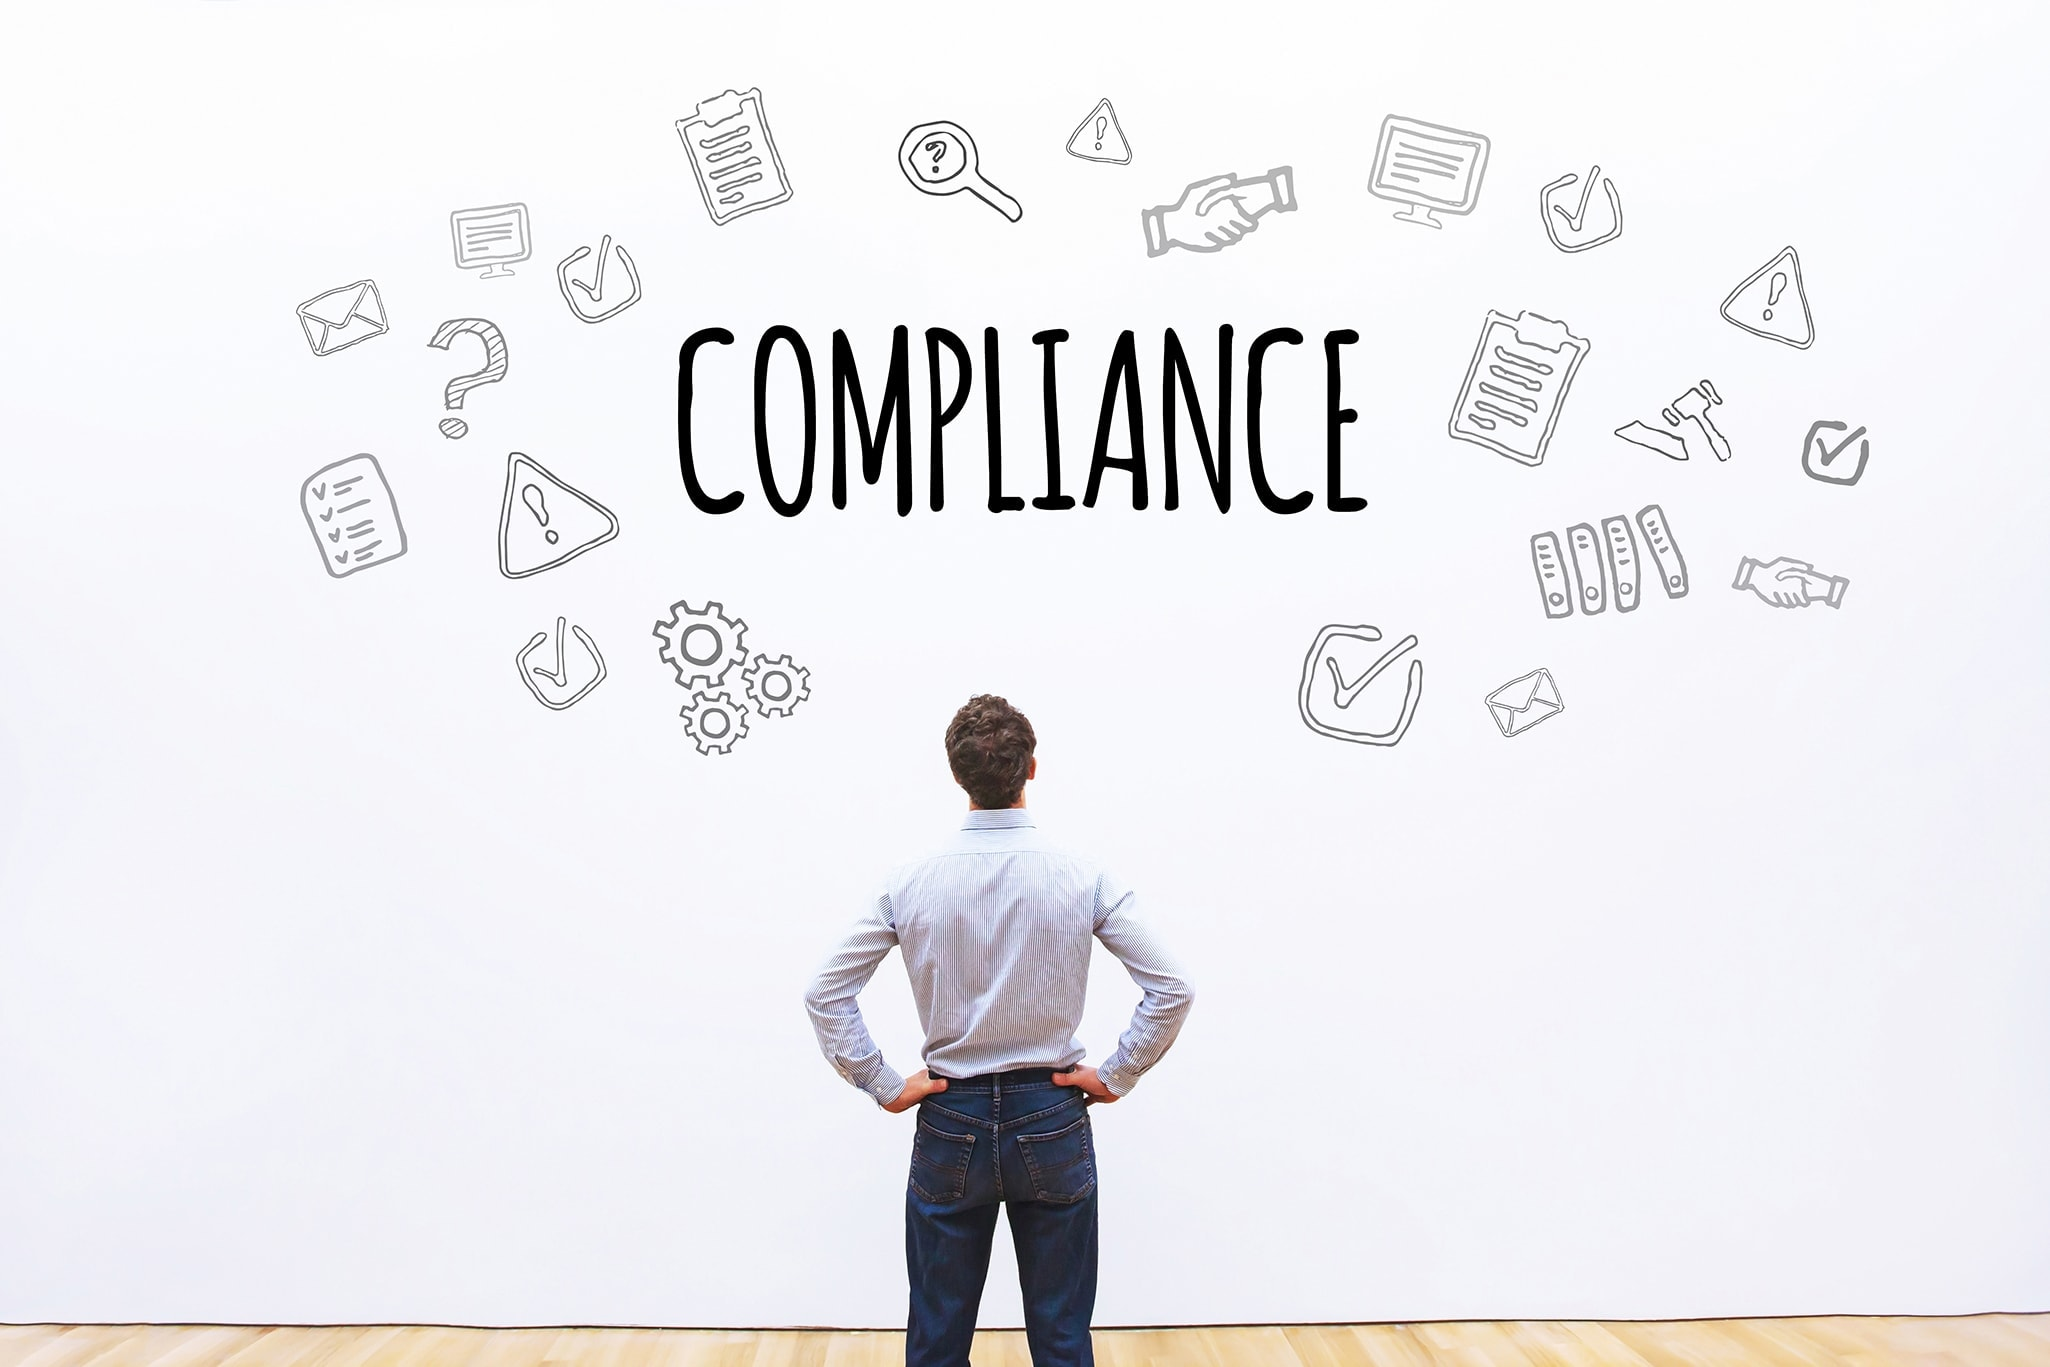 Compliance Small Business